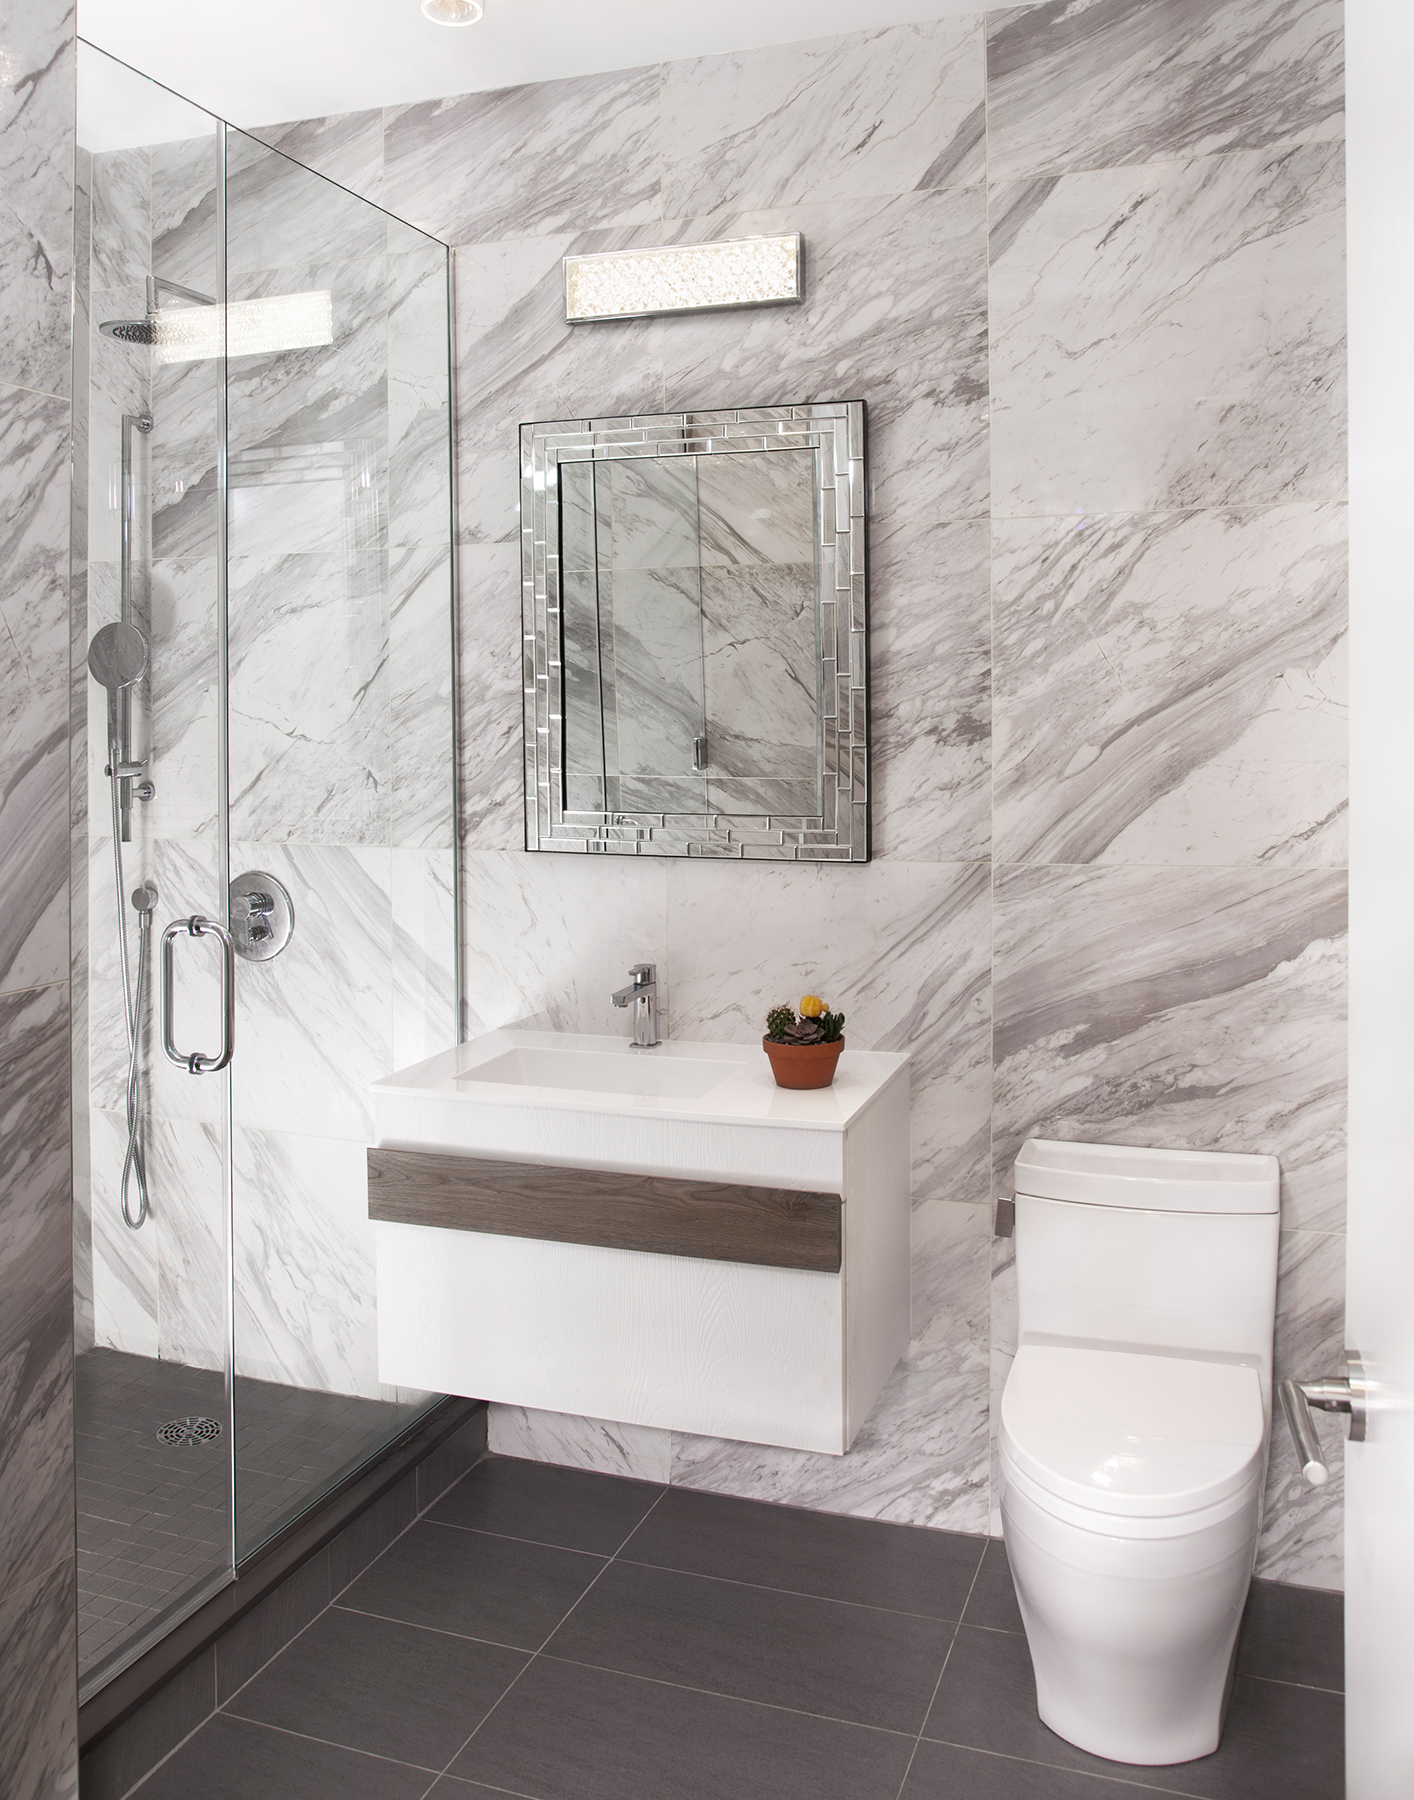 interior Design Photography in New York By Jonathan R. Bevkerman Design By Evelyn Benatar 7th Ave_Bathroom 06.jpg